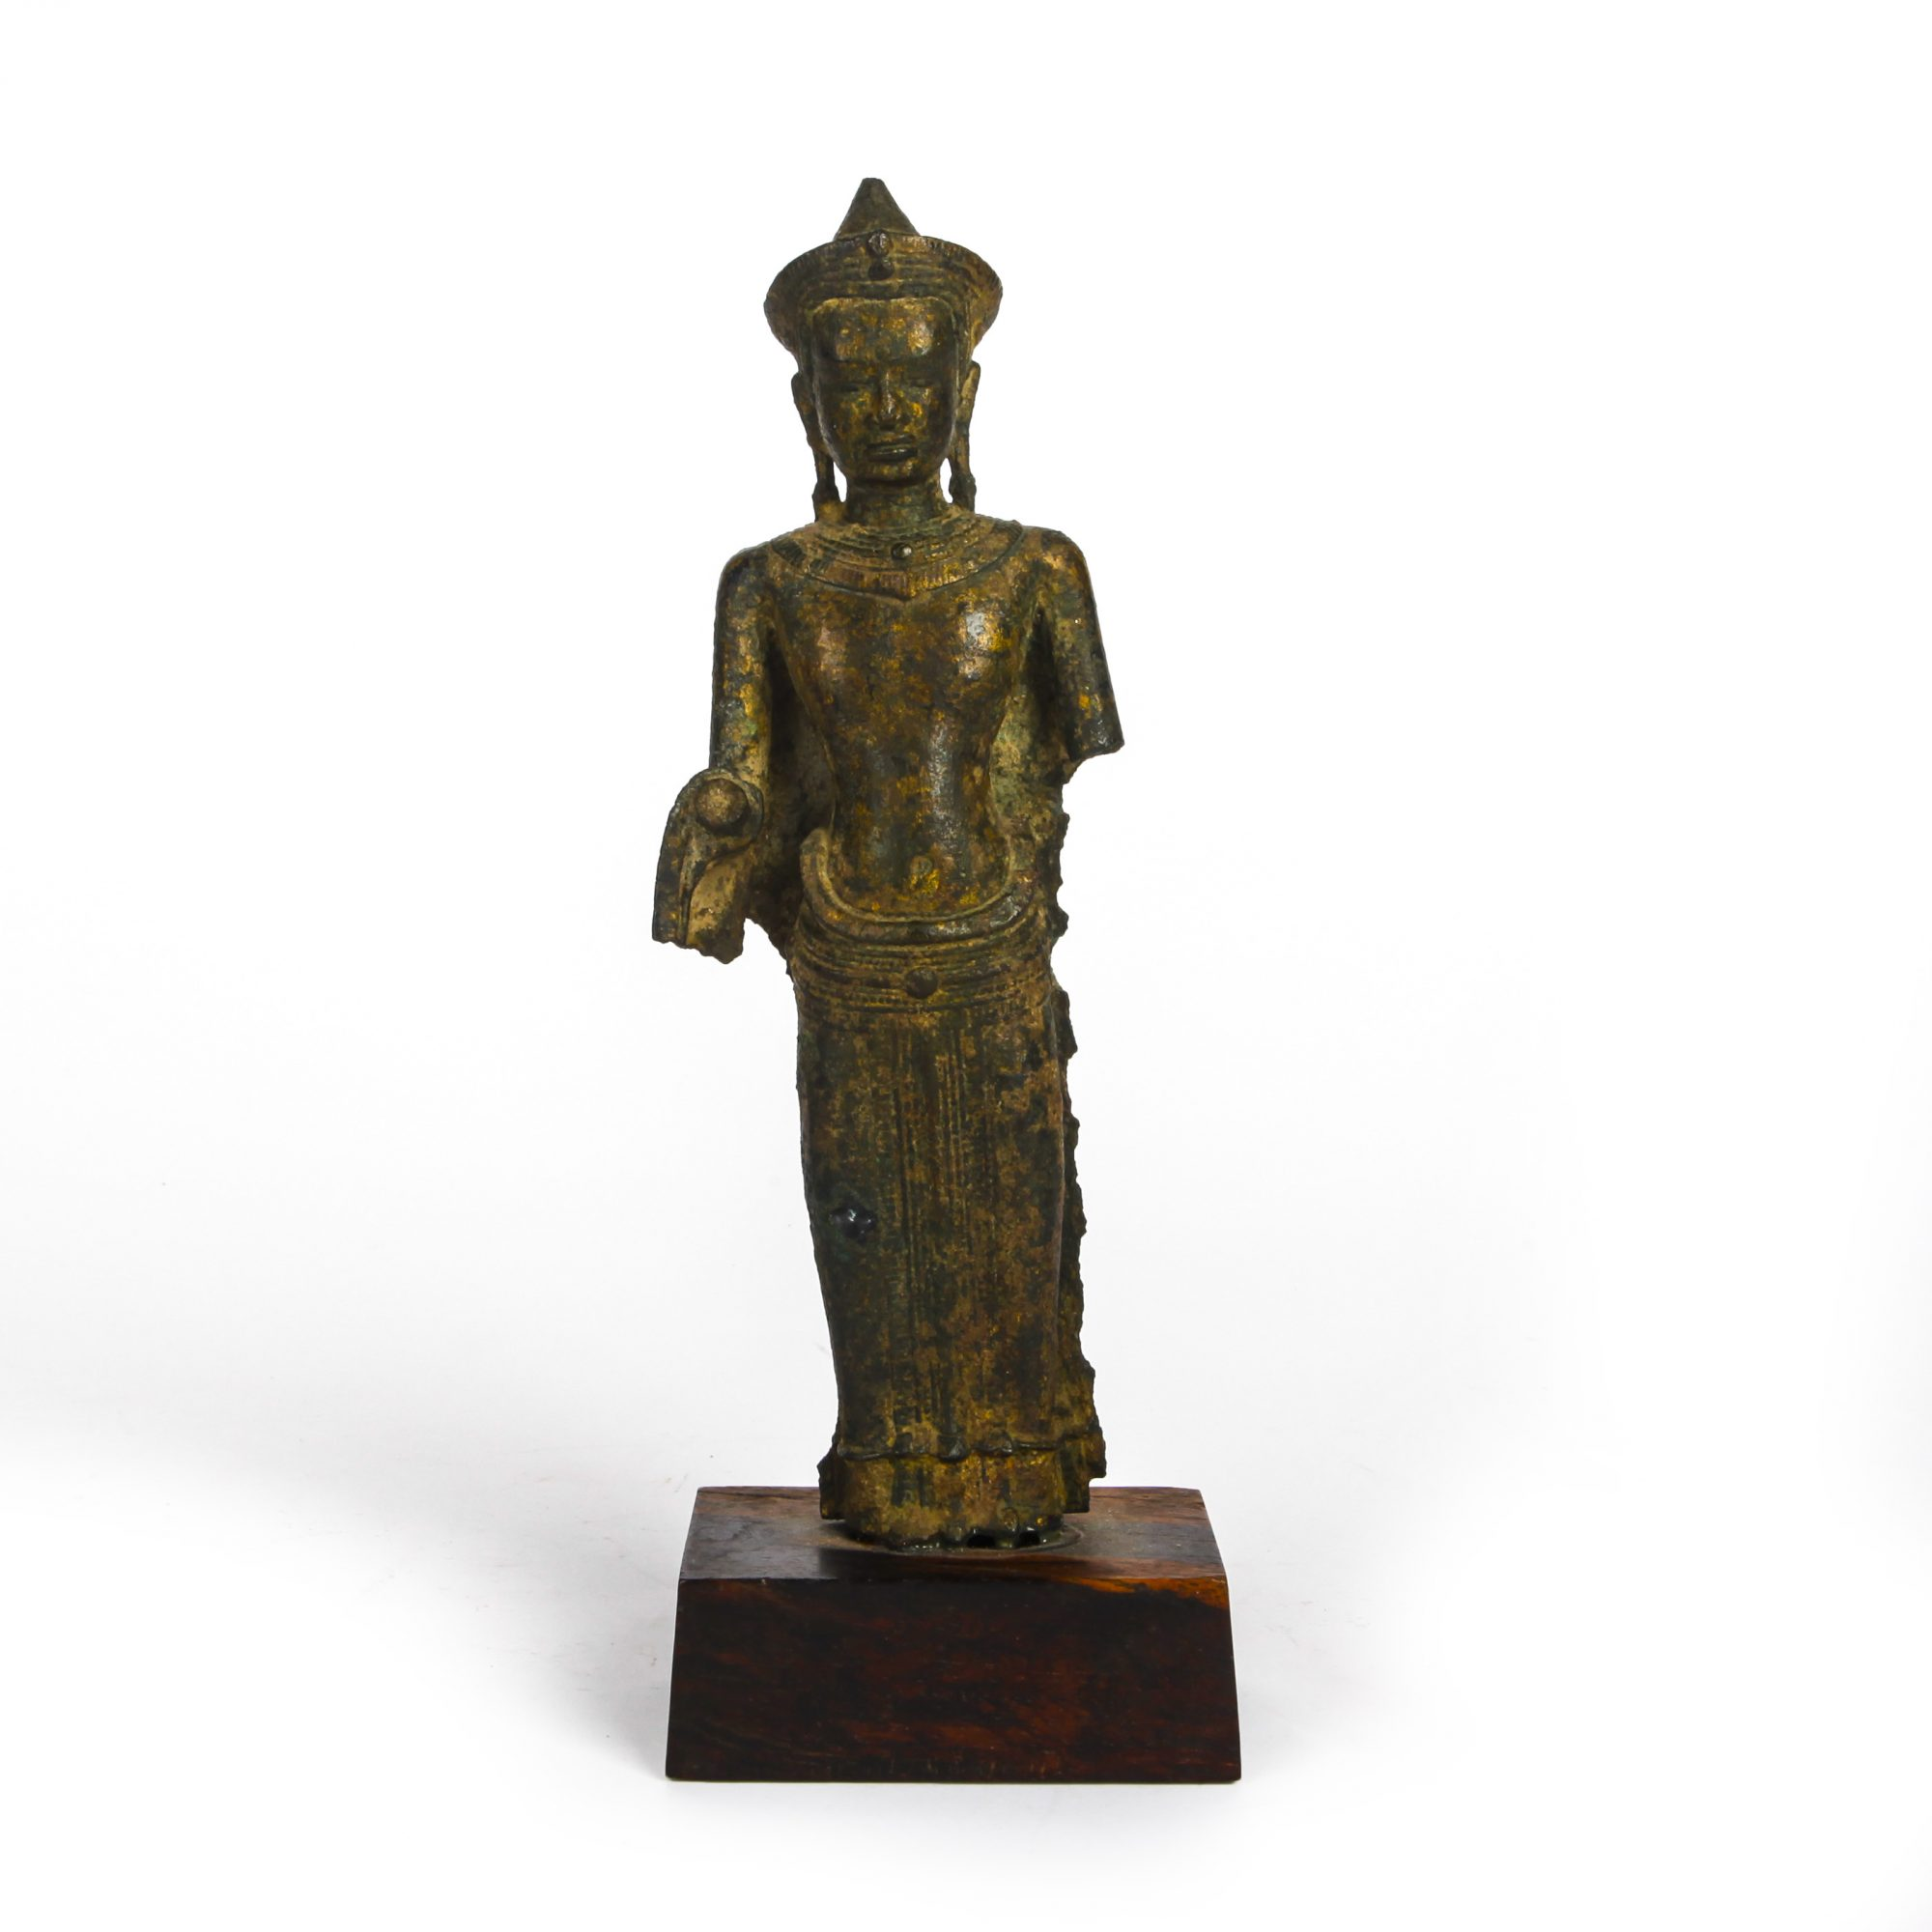 ANTIQUE THAI LOPBURI PERIOD KHMER BRONZE BUDDHA STATUE